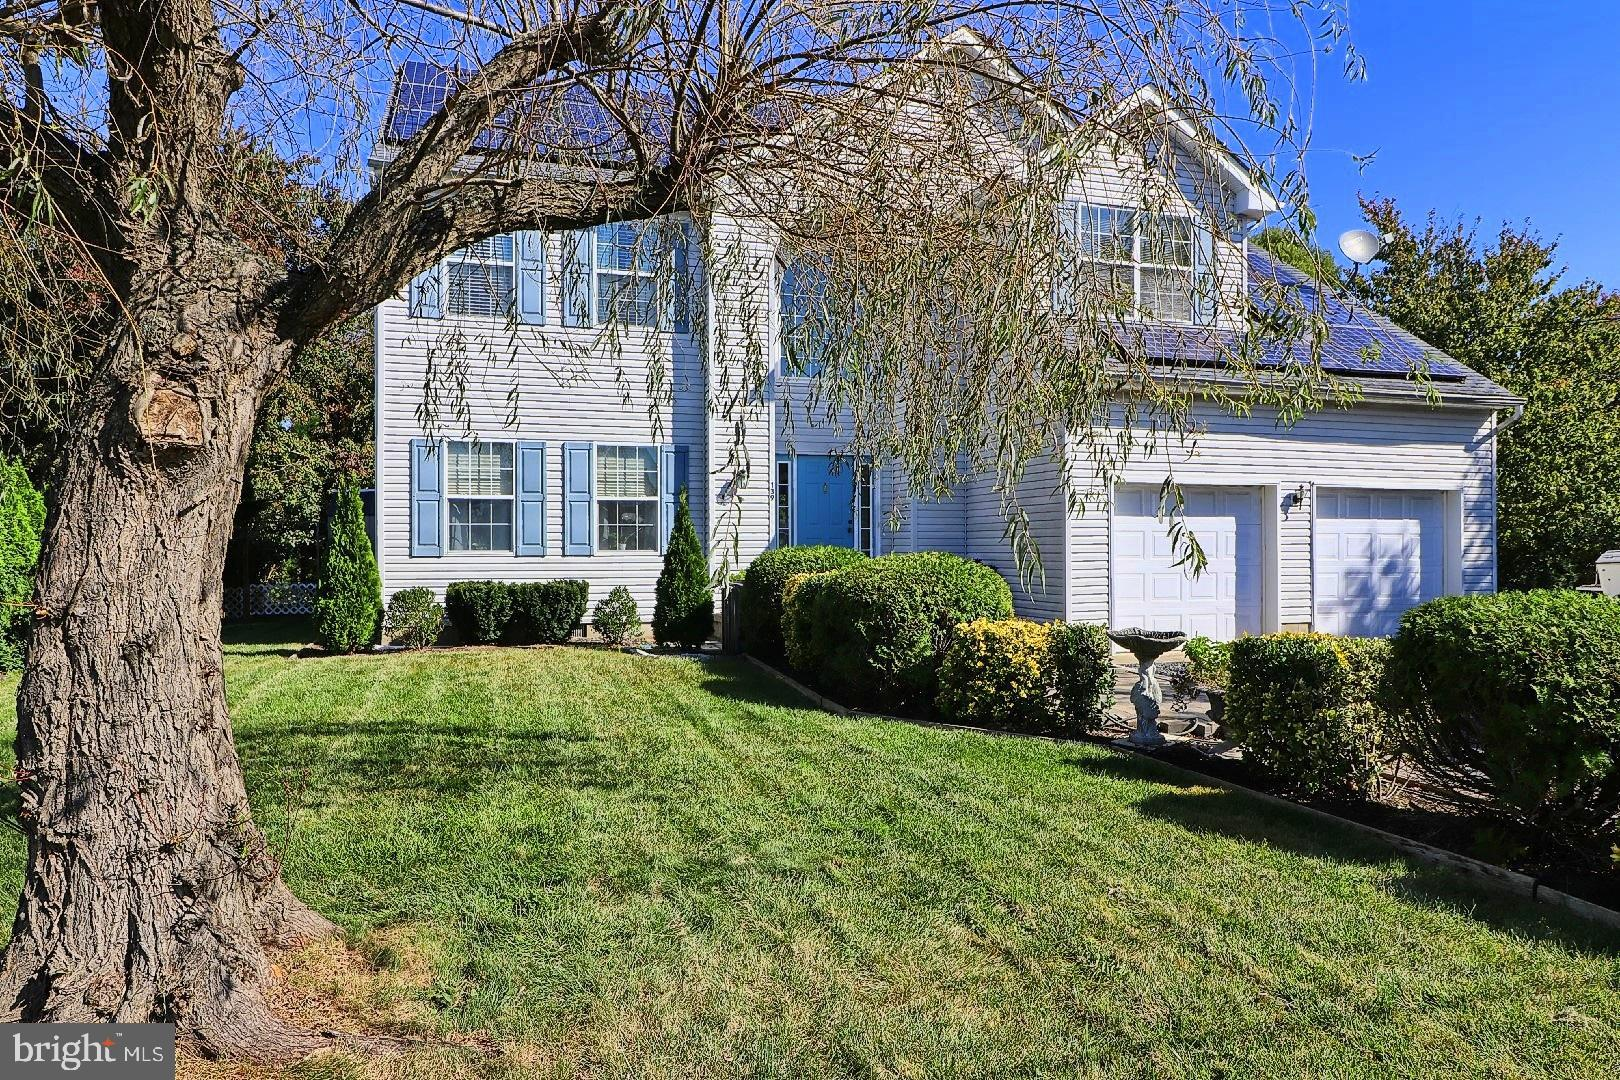 139 Admiral Way, Waretown, NJ 08758